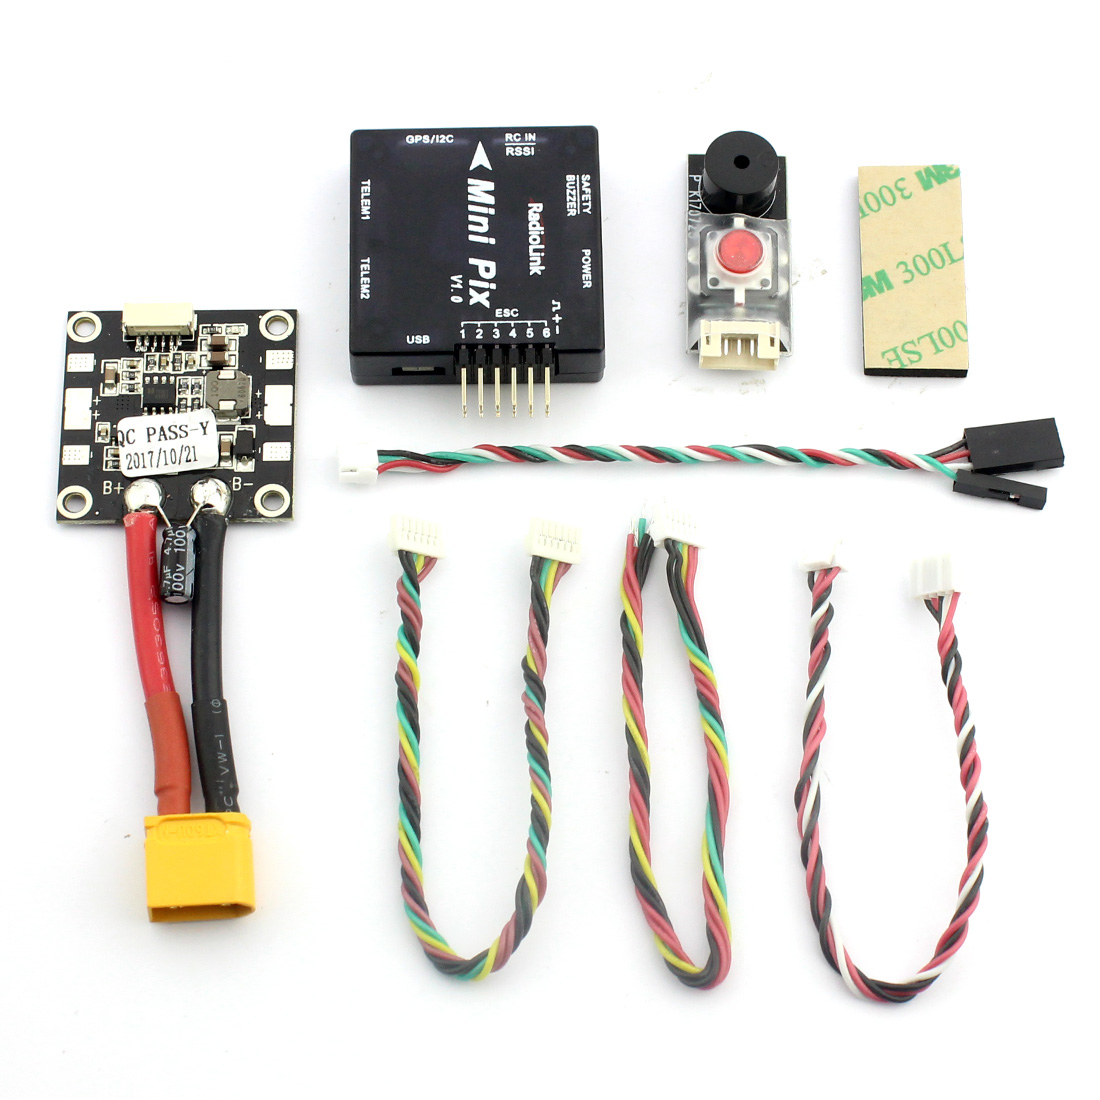 Image 3 - Radiolink Mini PIX M8N GPS Flight Control Vibration Damping by Software Atitude Hold for RC Racer Drone Multicopter Quadcopter-in Parts & Accessories from Toys & Hobbies